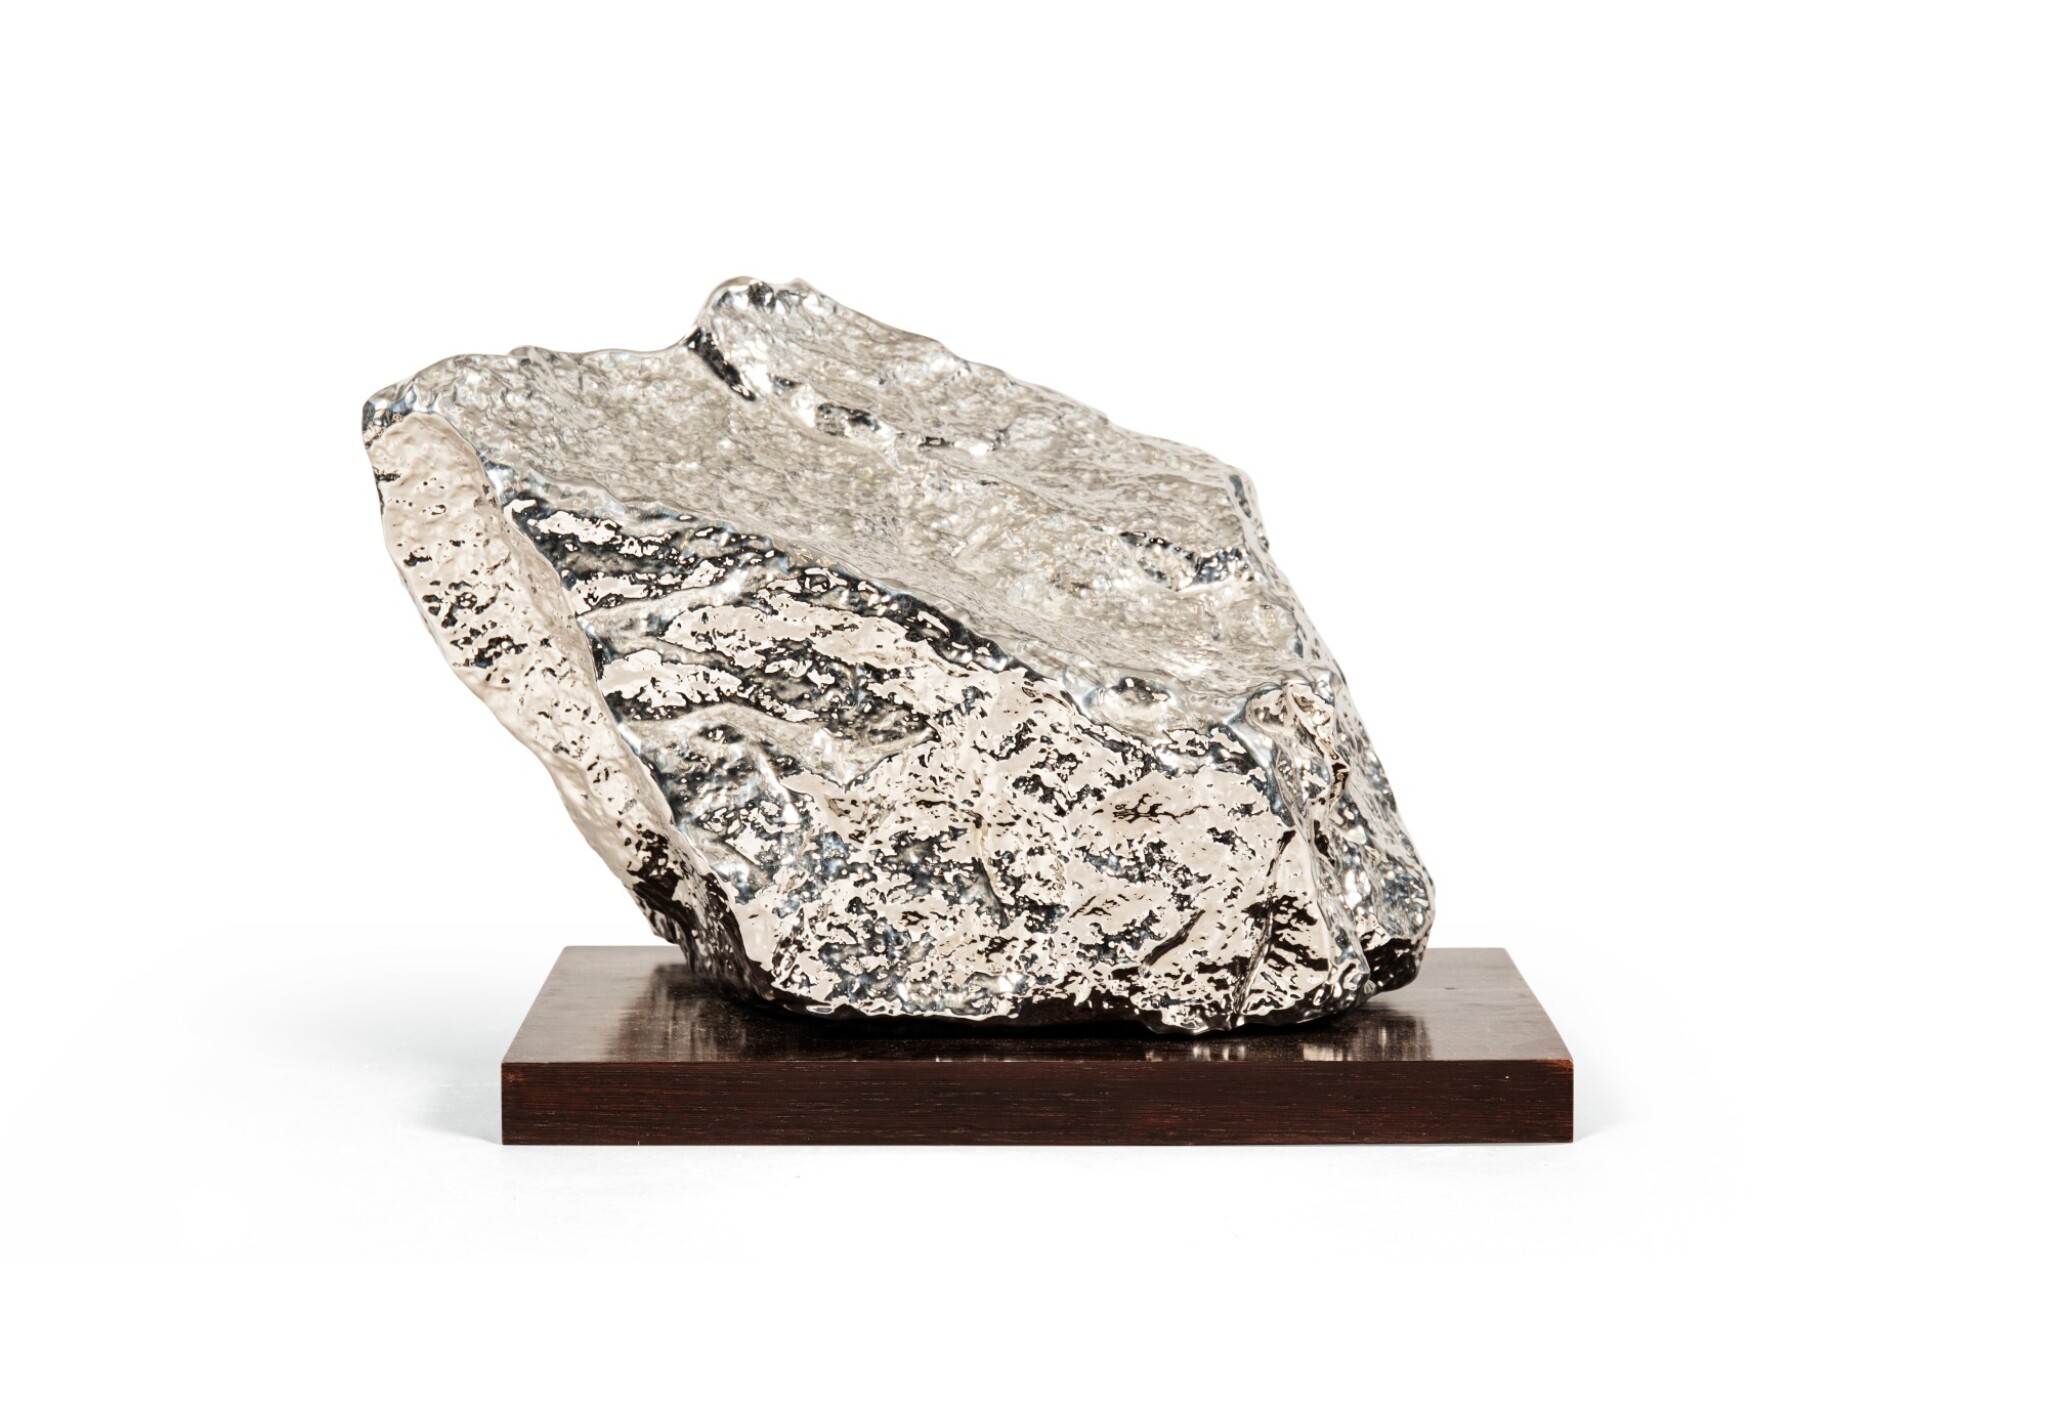 View 1 of Lot 124. Artificial rock        .